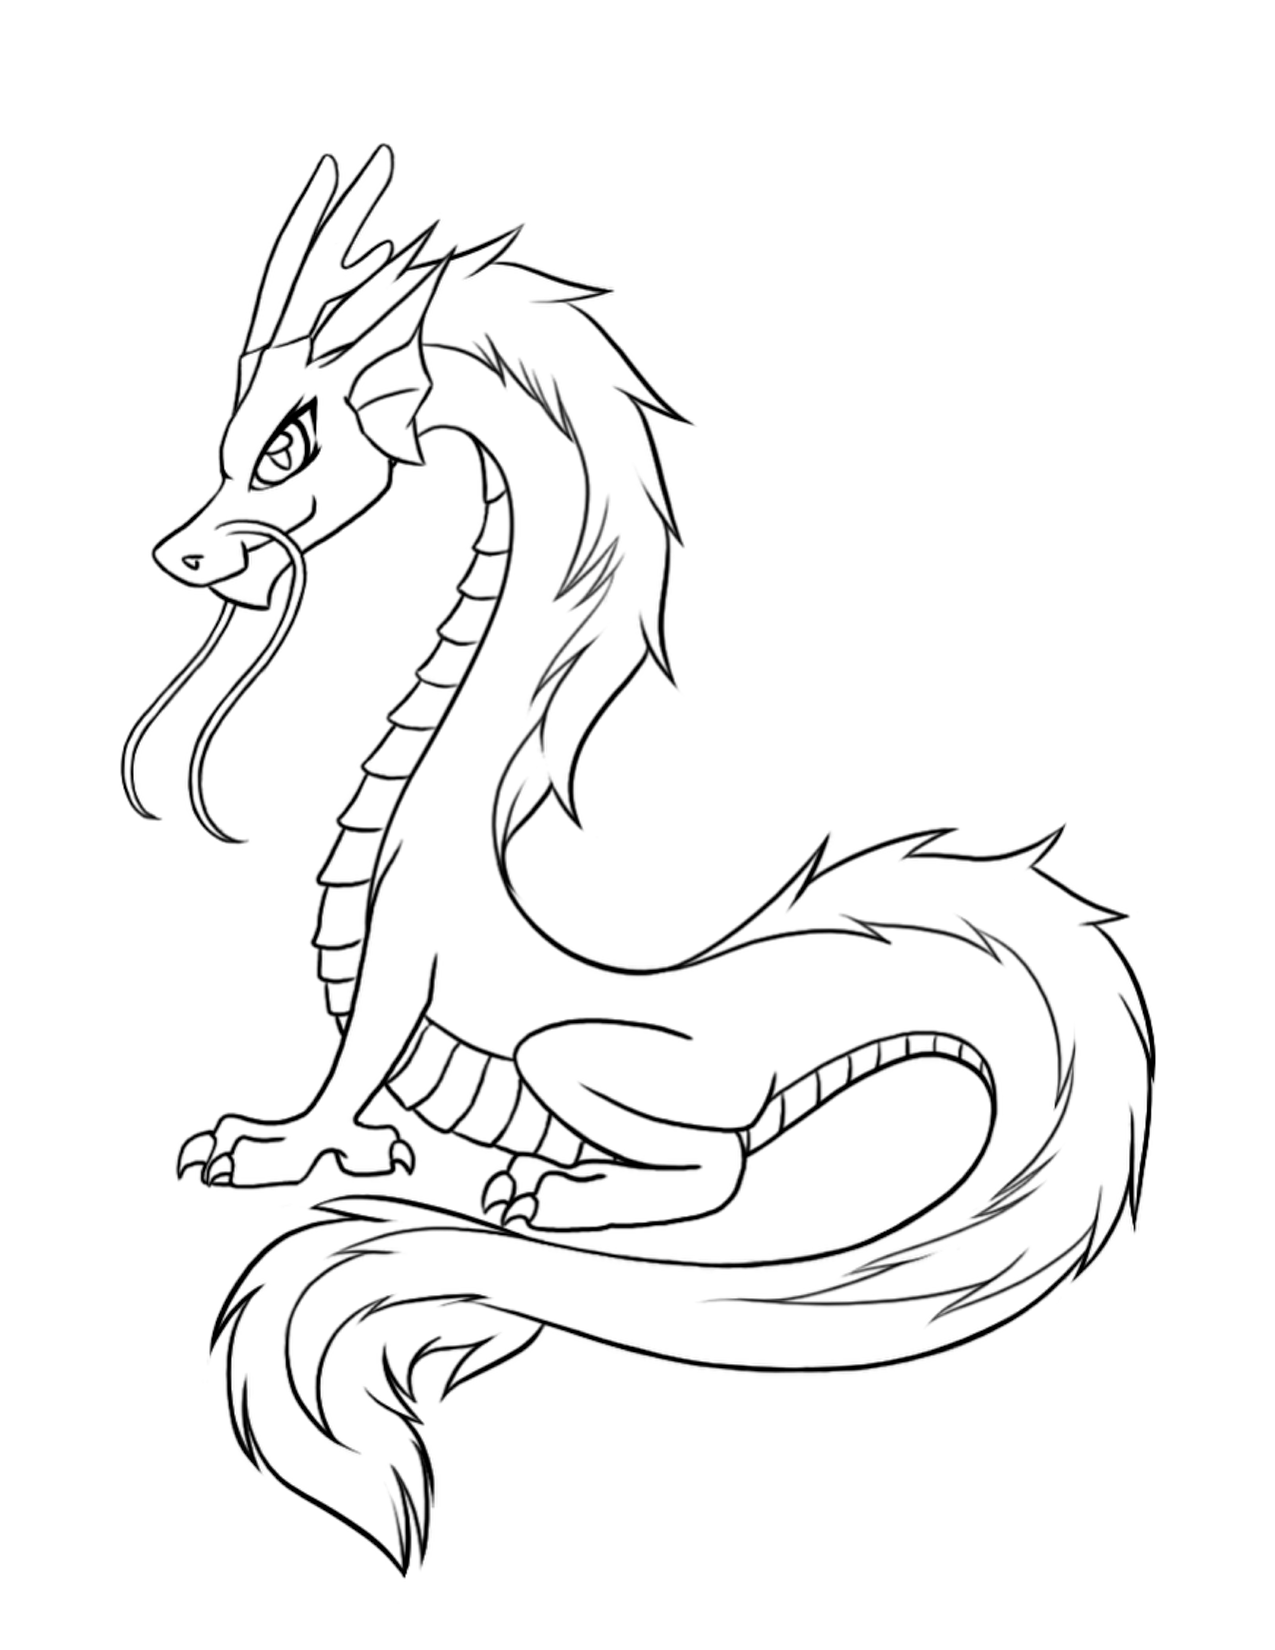 Dragons Ausmalbilder Drachen : Free Printable Dragon Coloring Pages For Kids Drachen Ausmalbilder